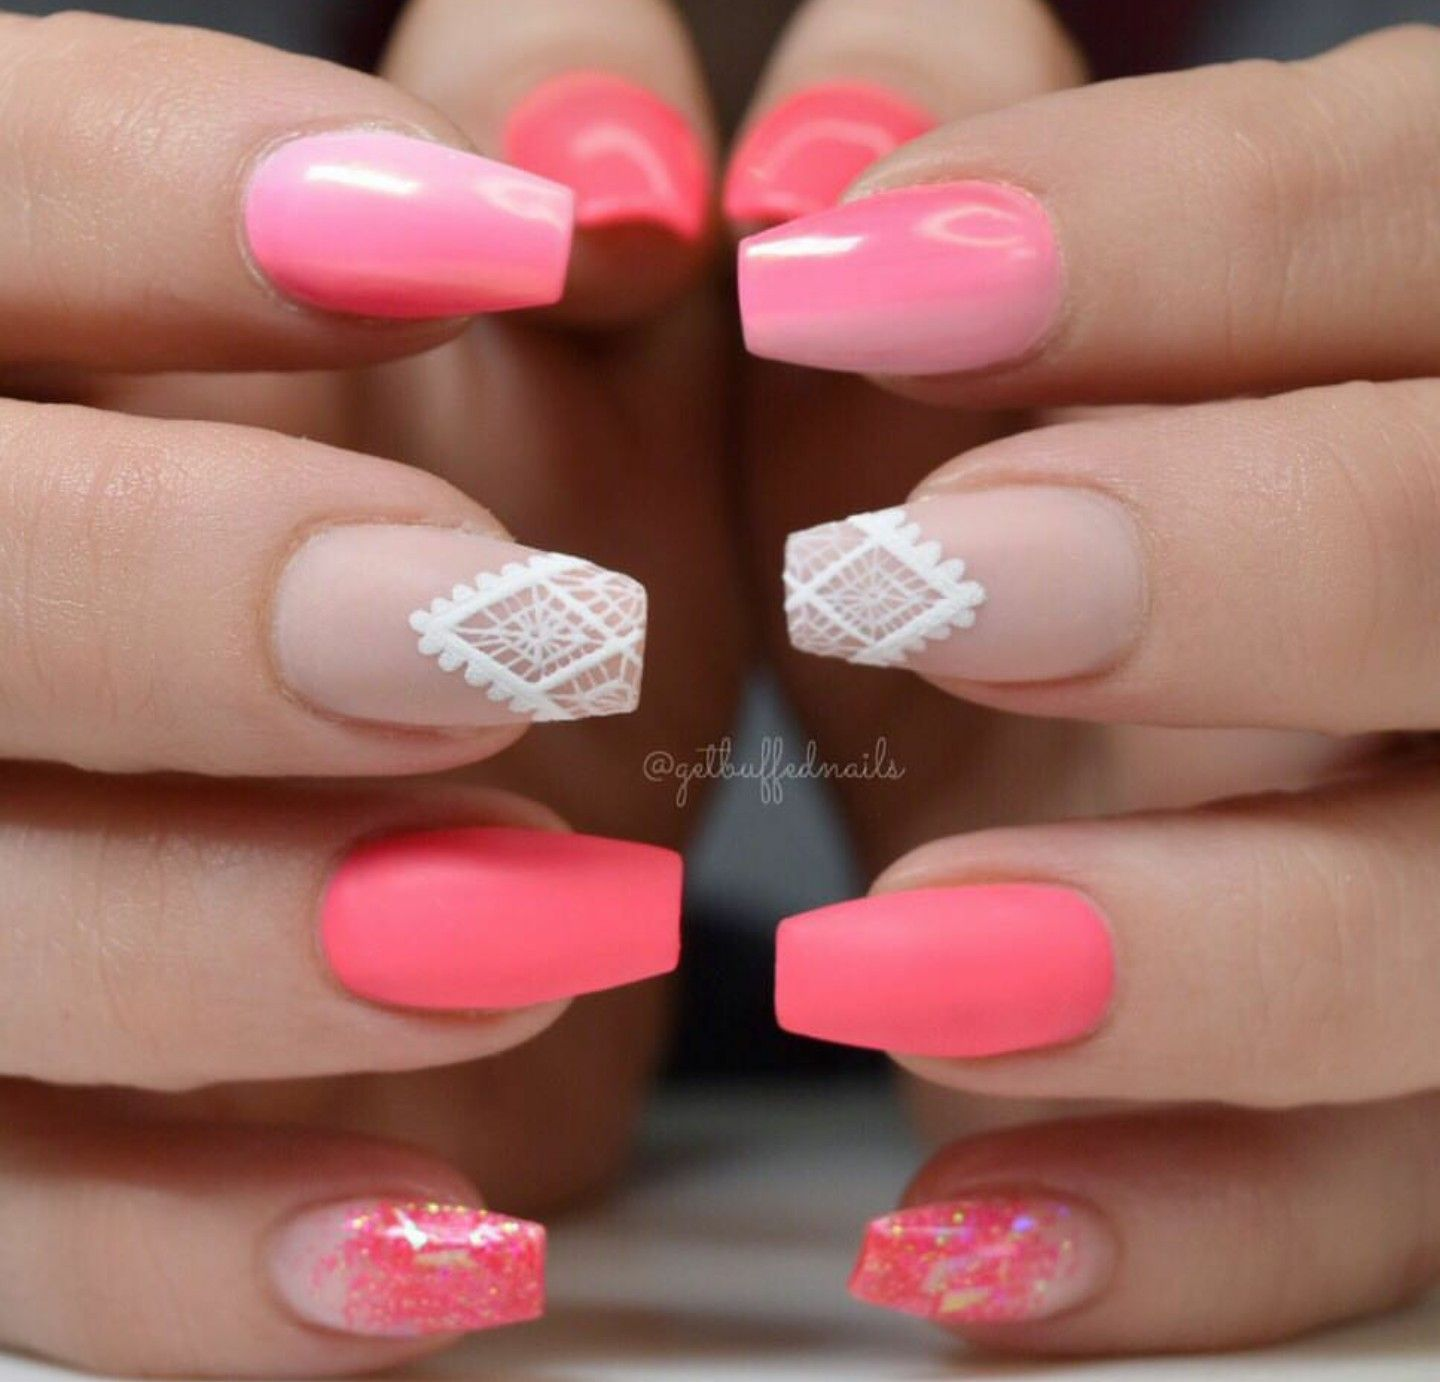 Pin by Jaelyn Melendez on Nails | Pinterest | Nail patterns and ...